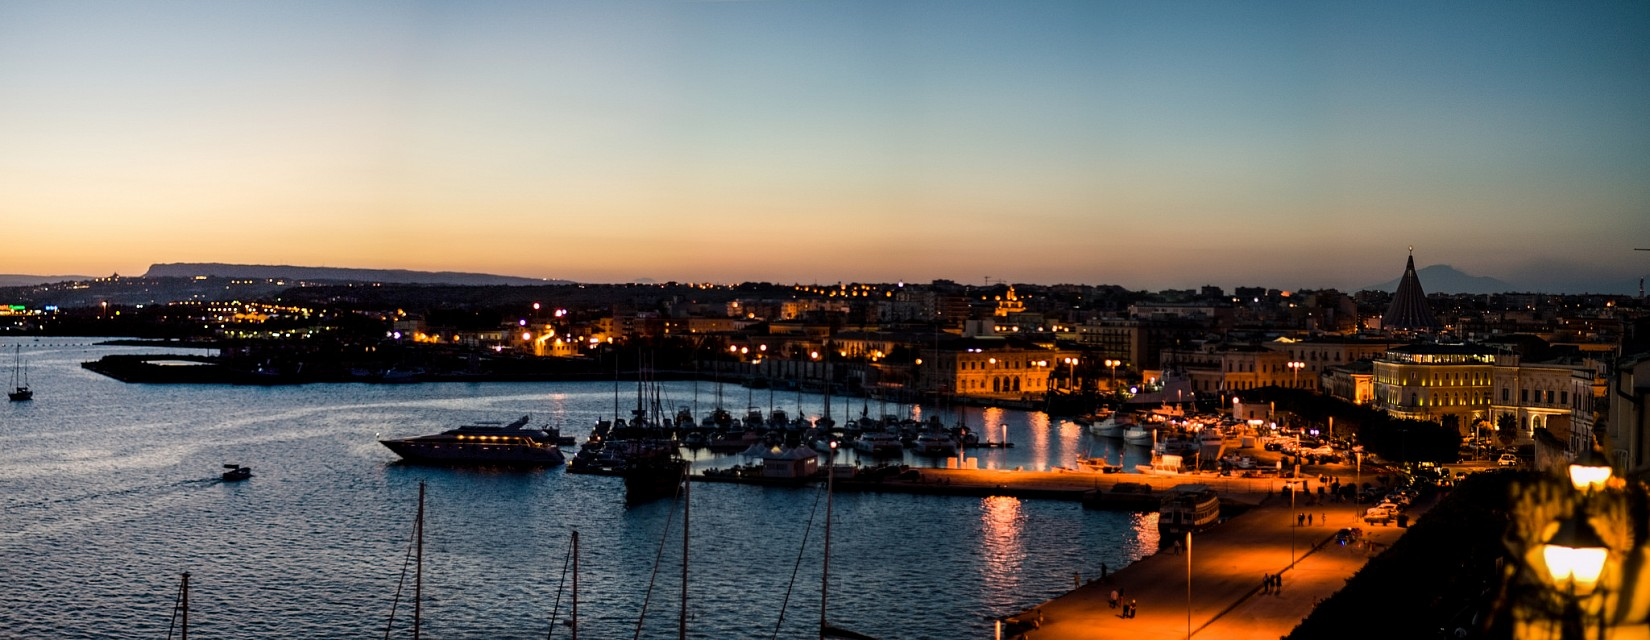 Dusk in Ortigia 04 - Syracuse